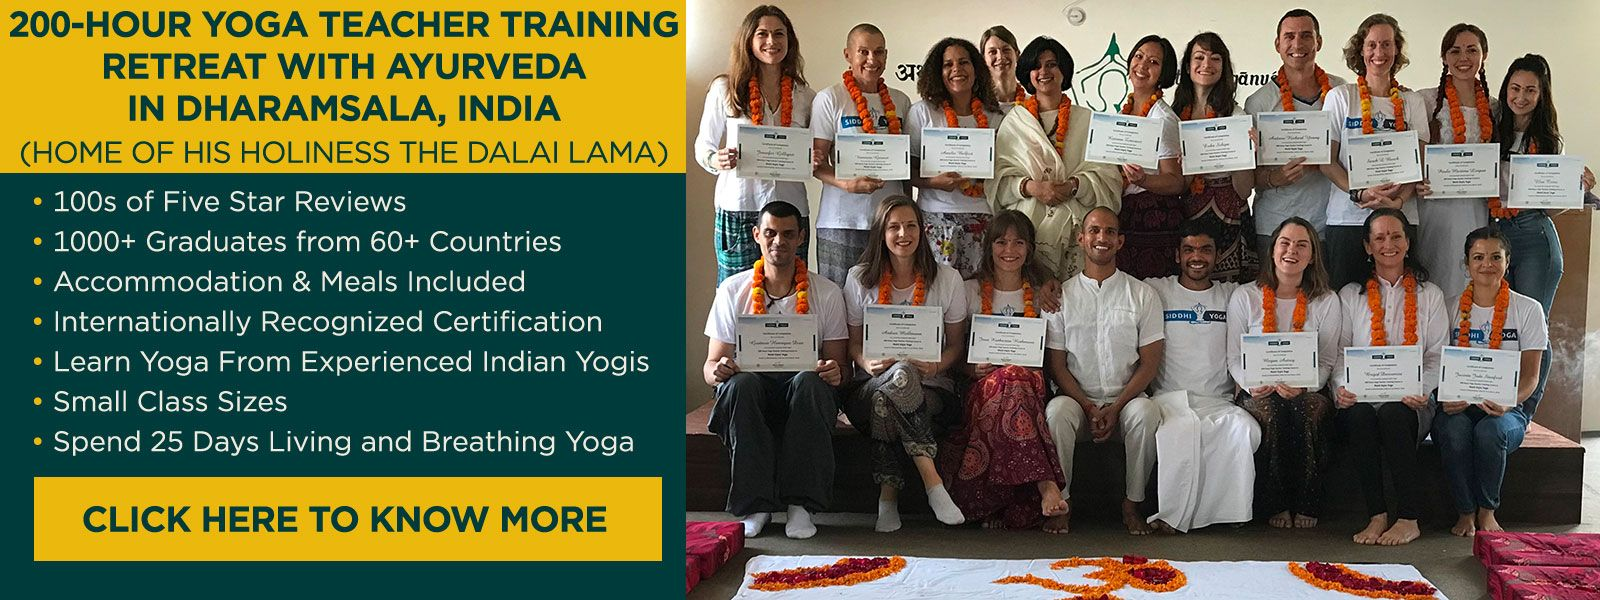 yoga teacher training india 2018-2019